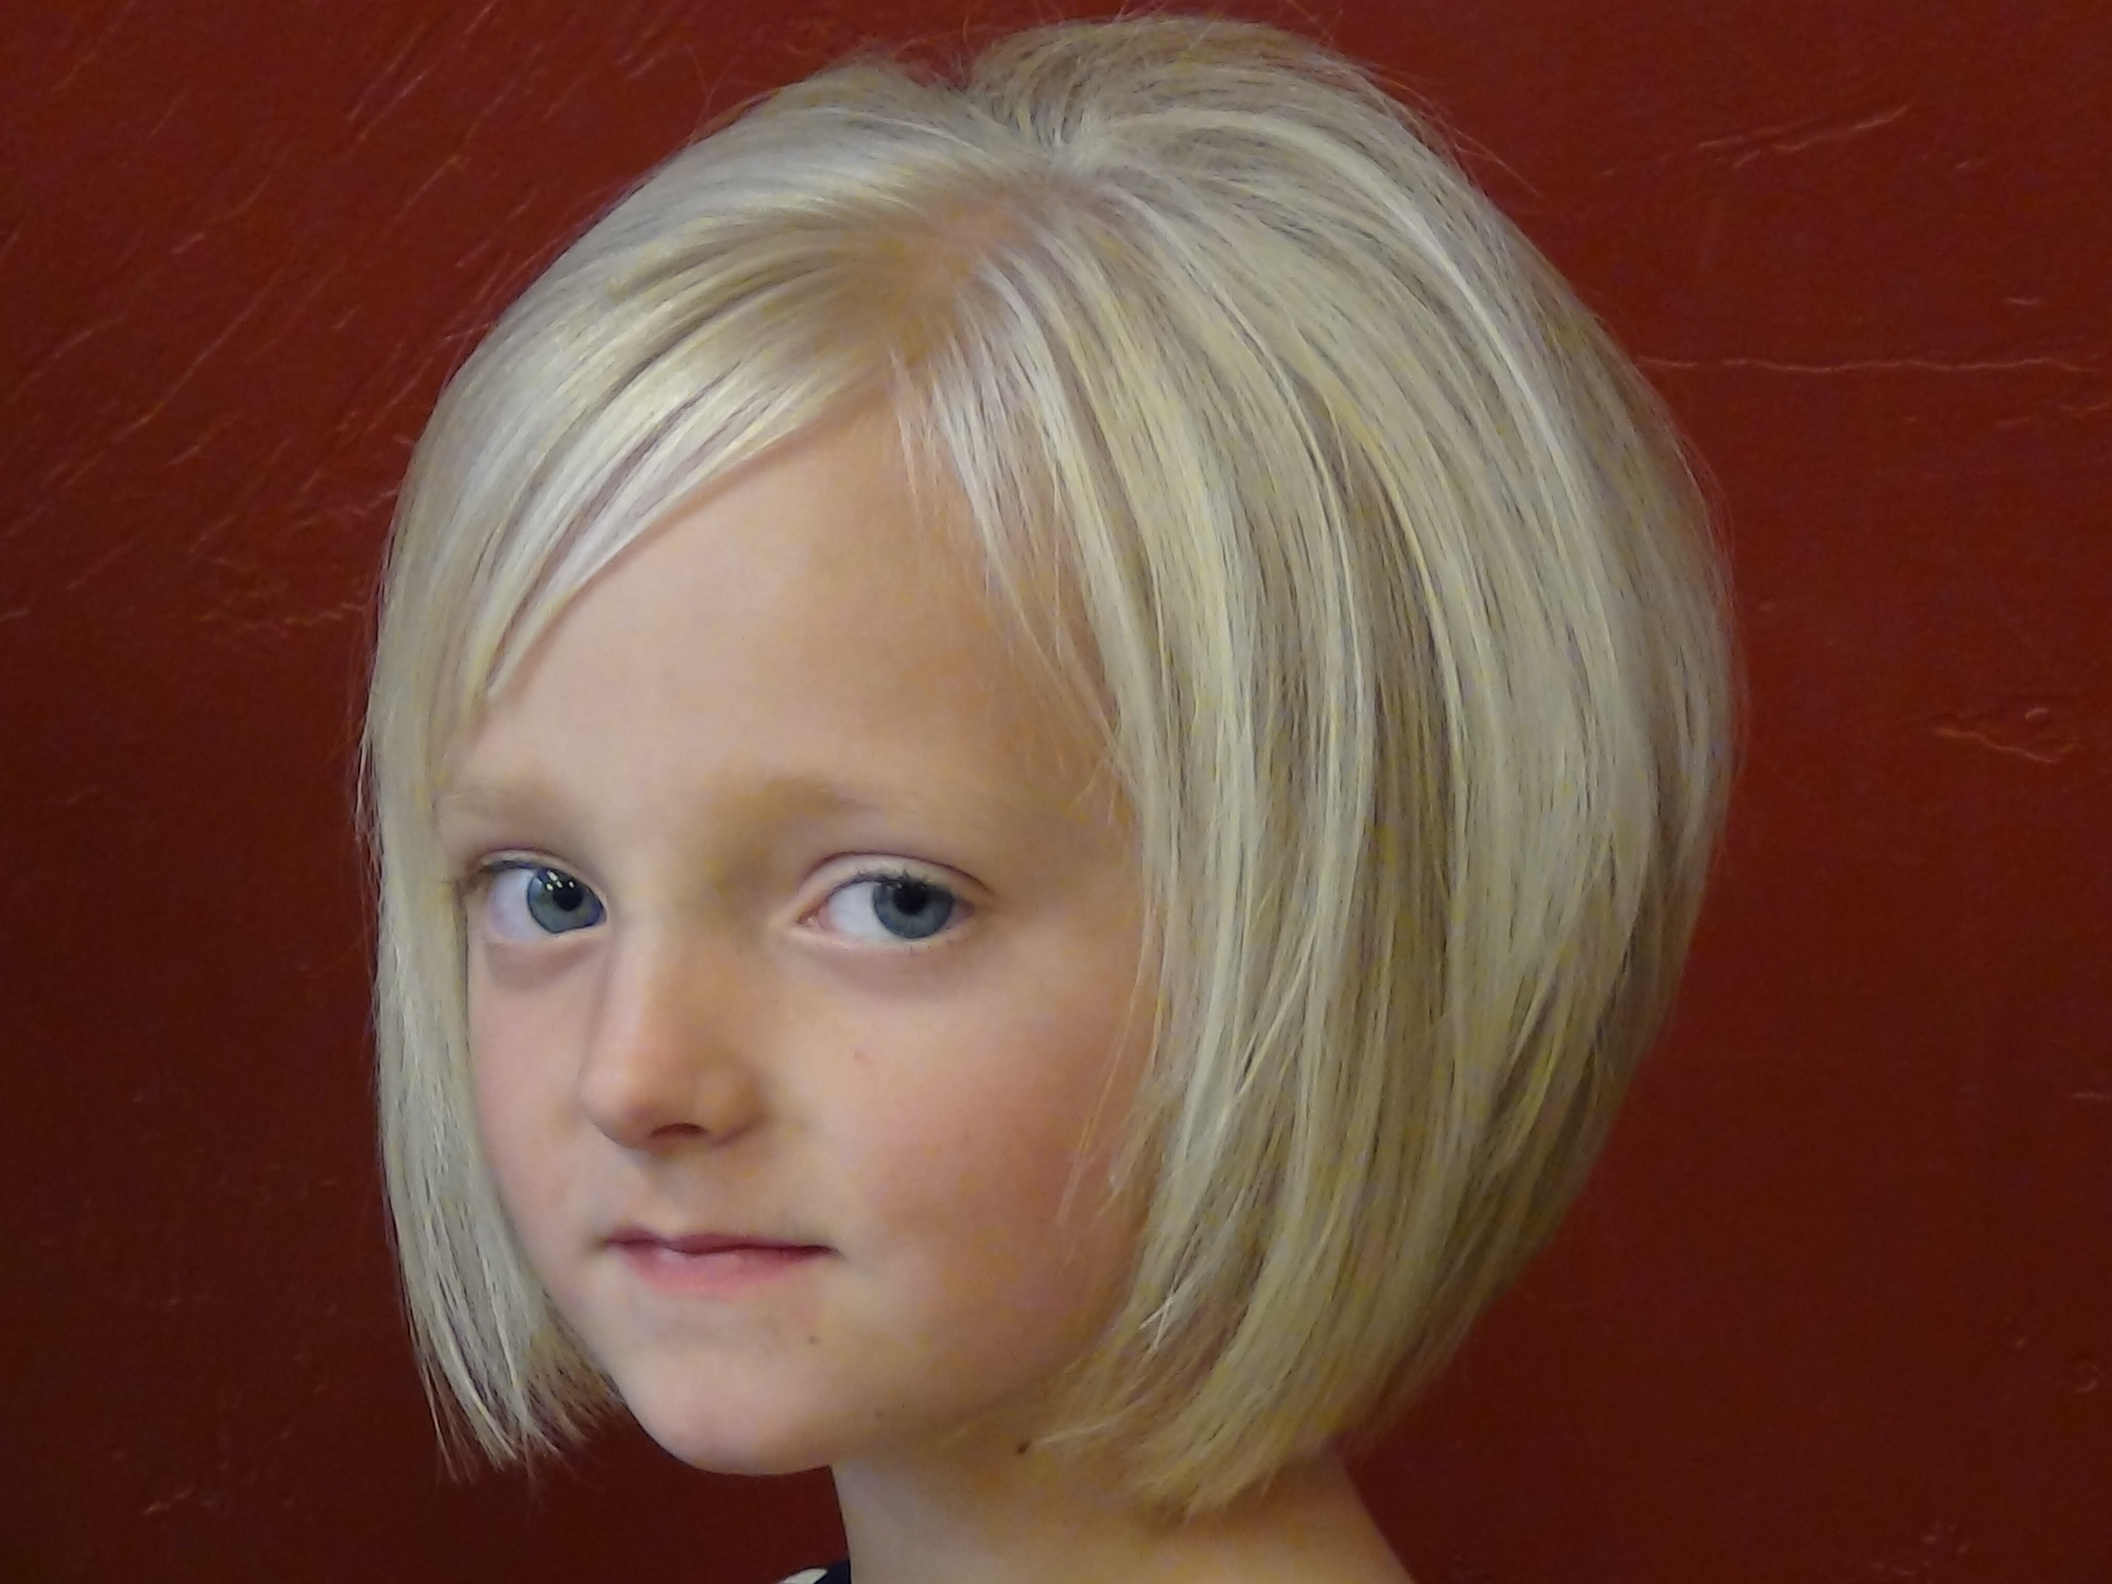 Cut And Style : Cut Short Style into Little Girls Hair and Style Boys and Girls Hair ...